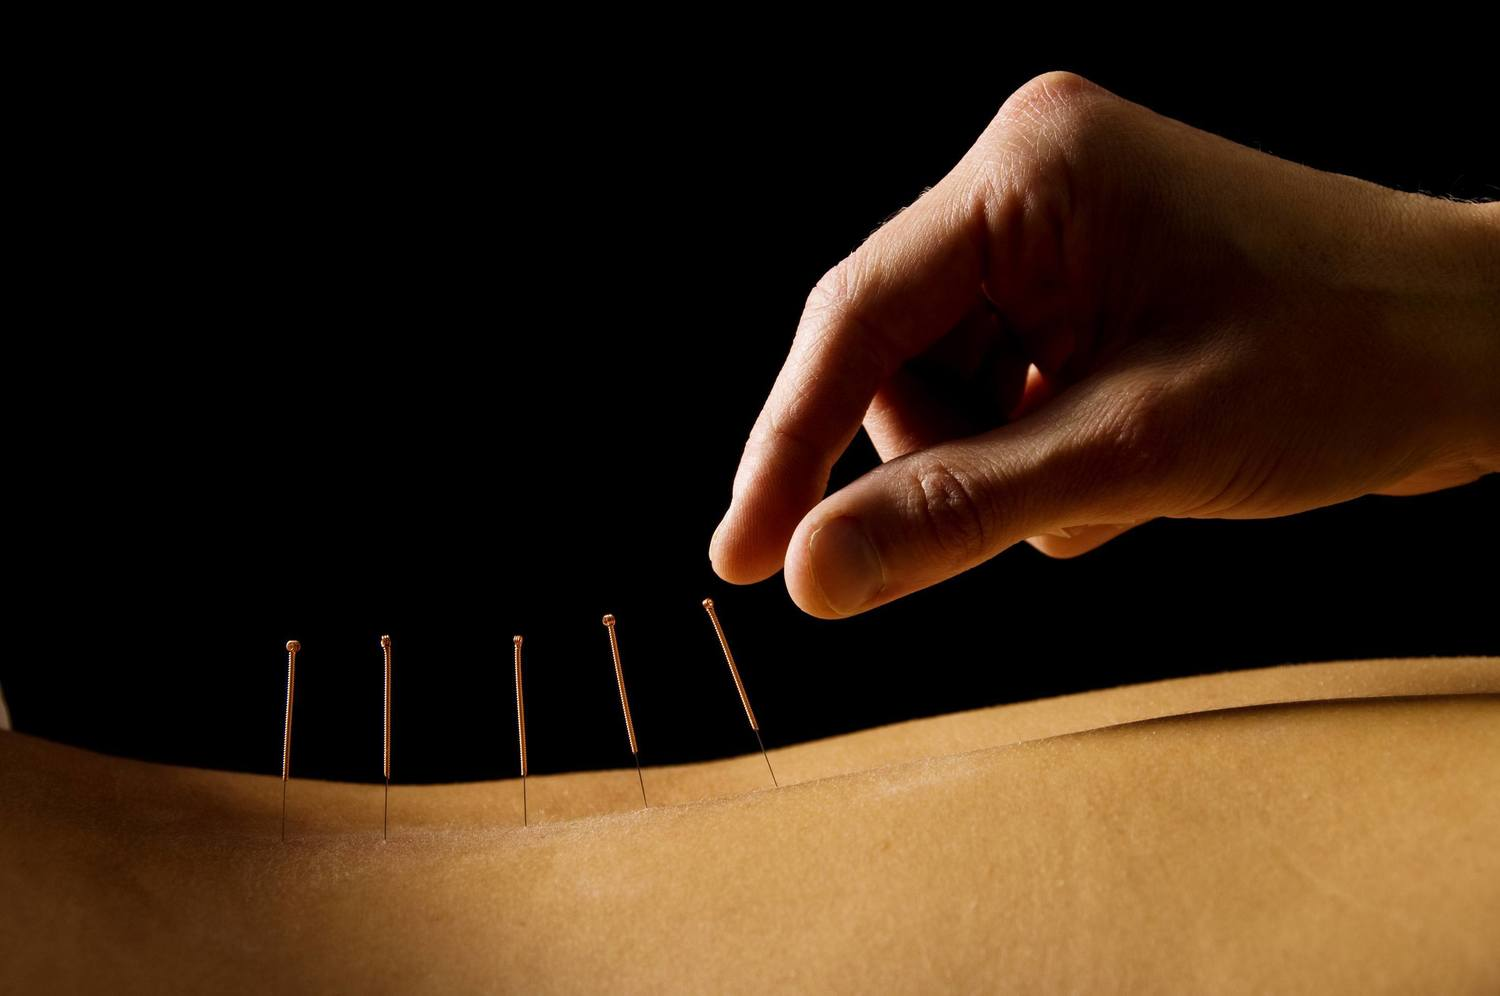 Dry Needling and Chiropractic Care in Herndon, Sterling and Northern, VA